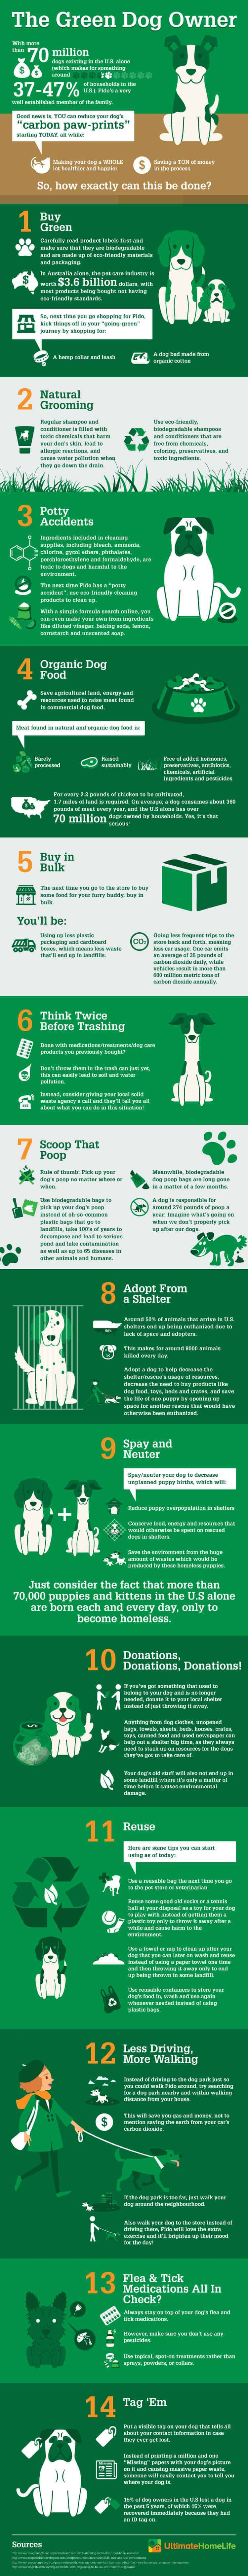 go green with dog